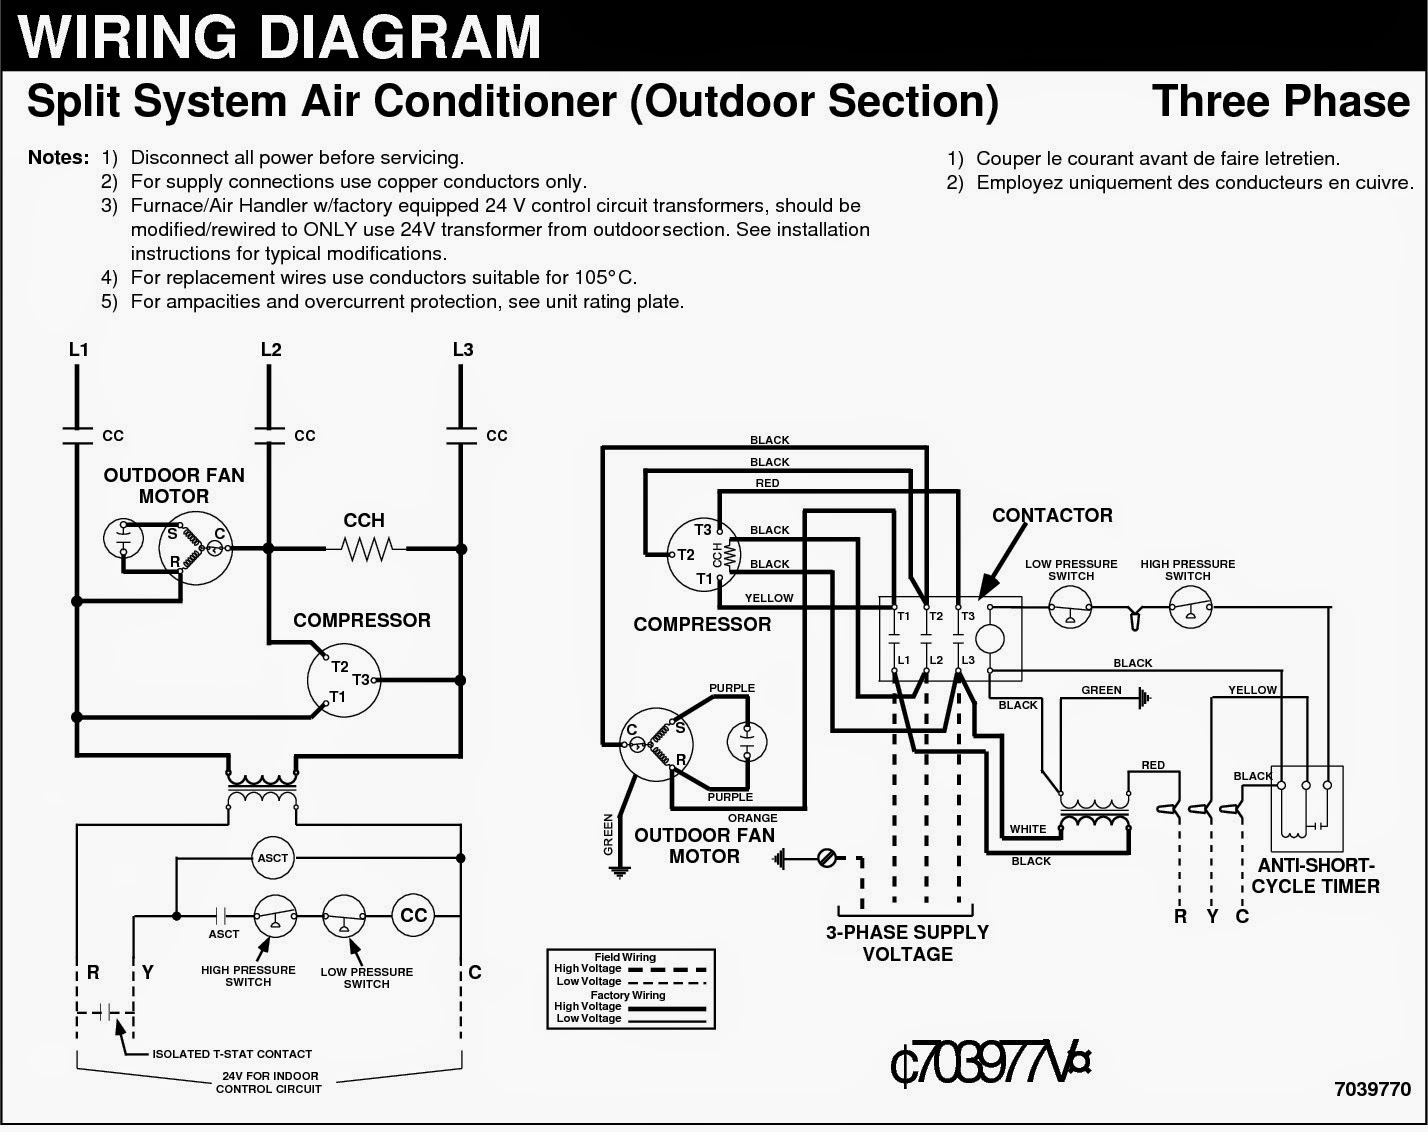 3+phase ac compressor wiring diagram bitzer compressor wiring diagram 3 phase motor control wiring diagram at gsmx.co